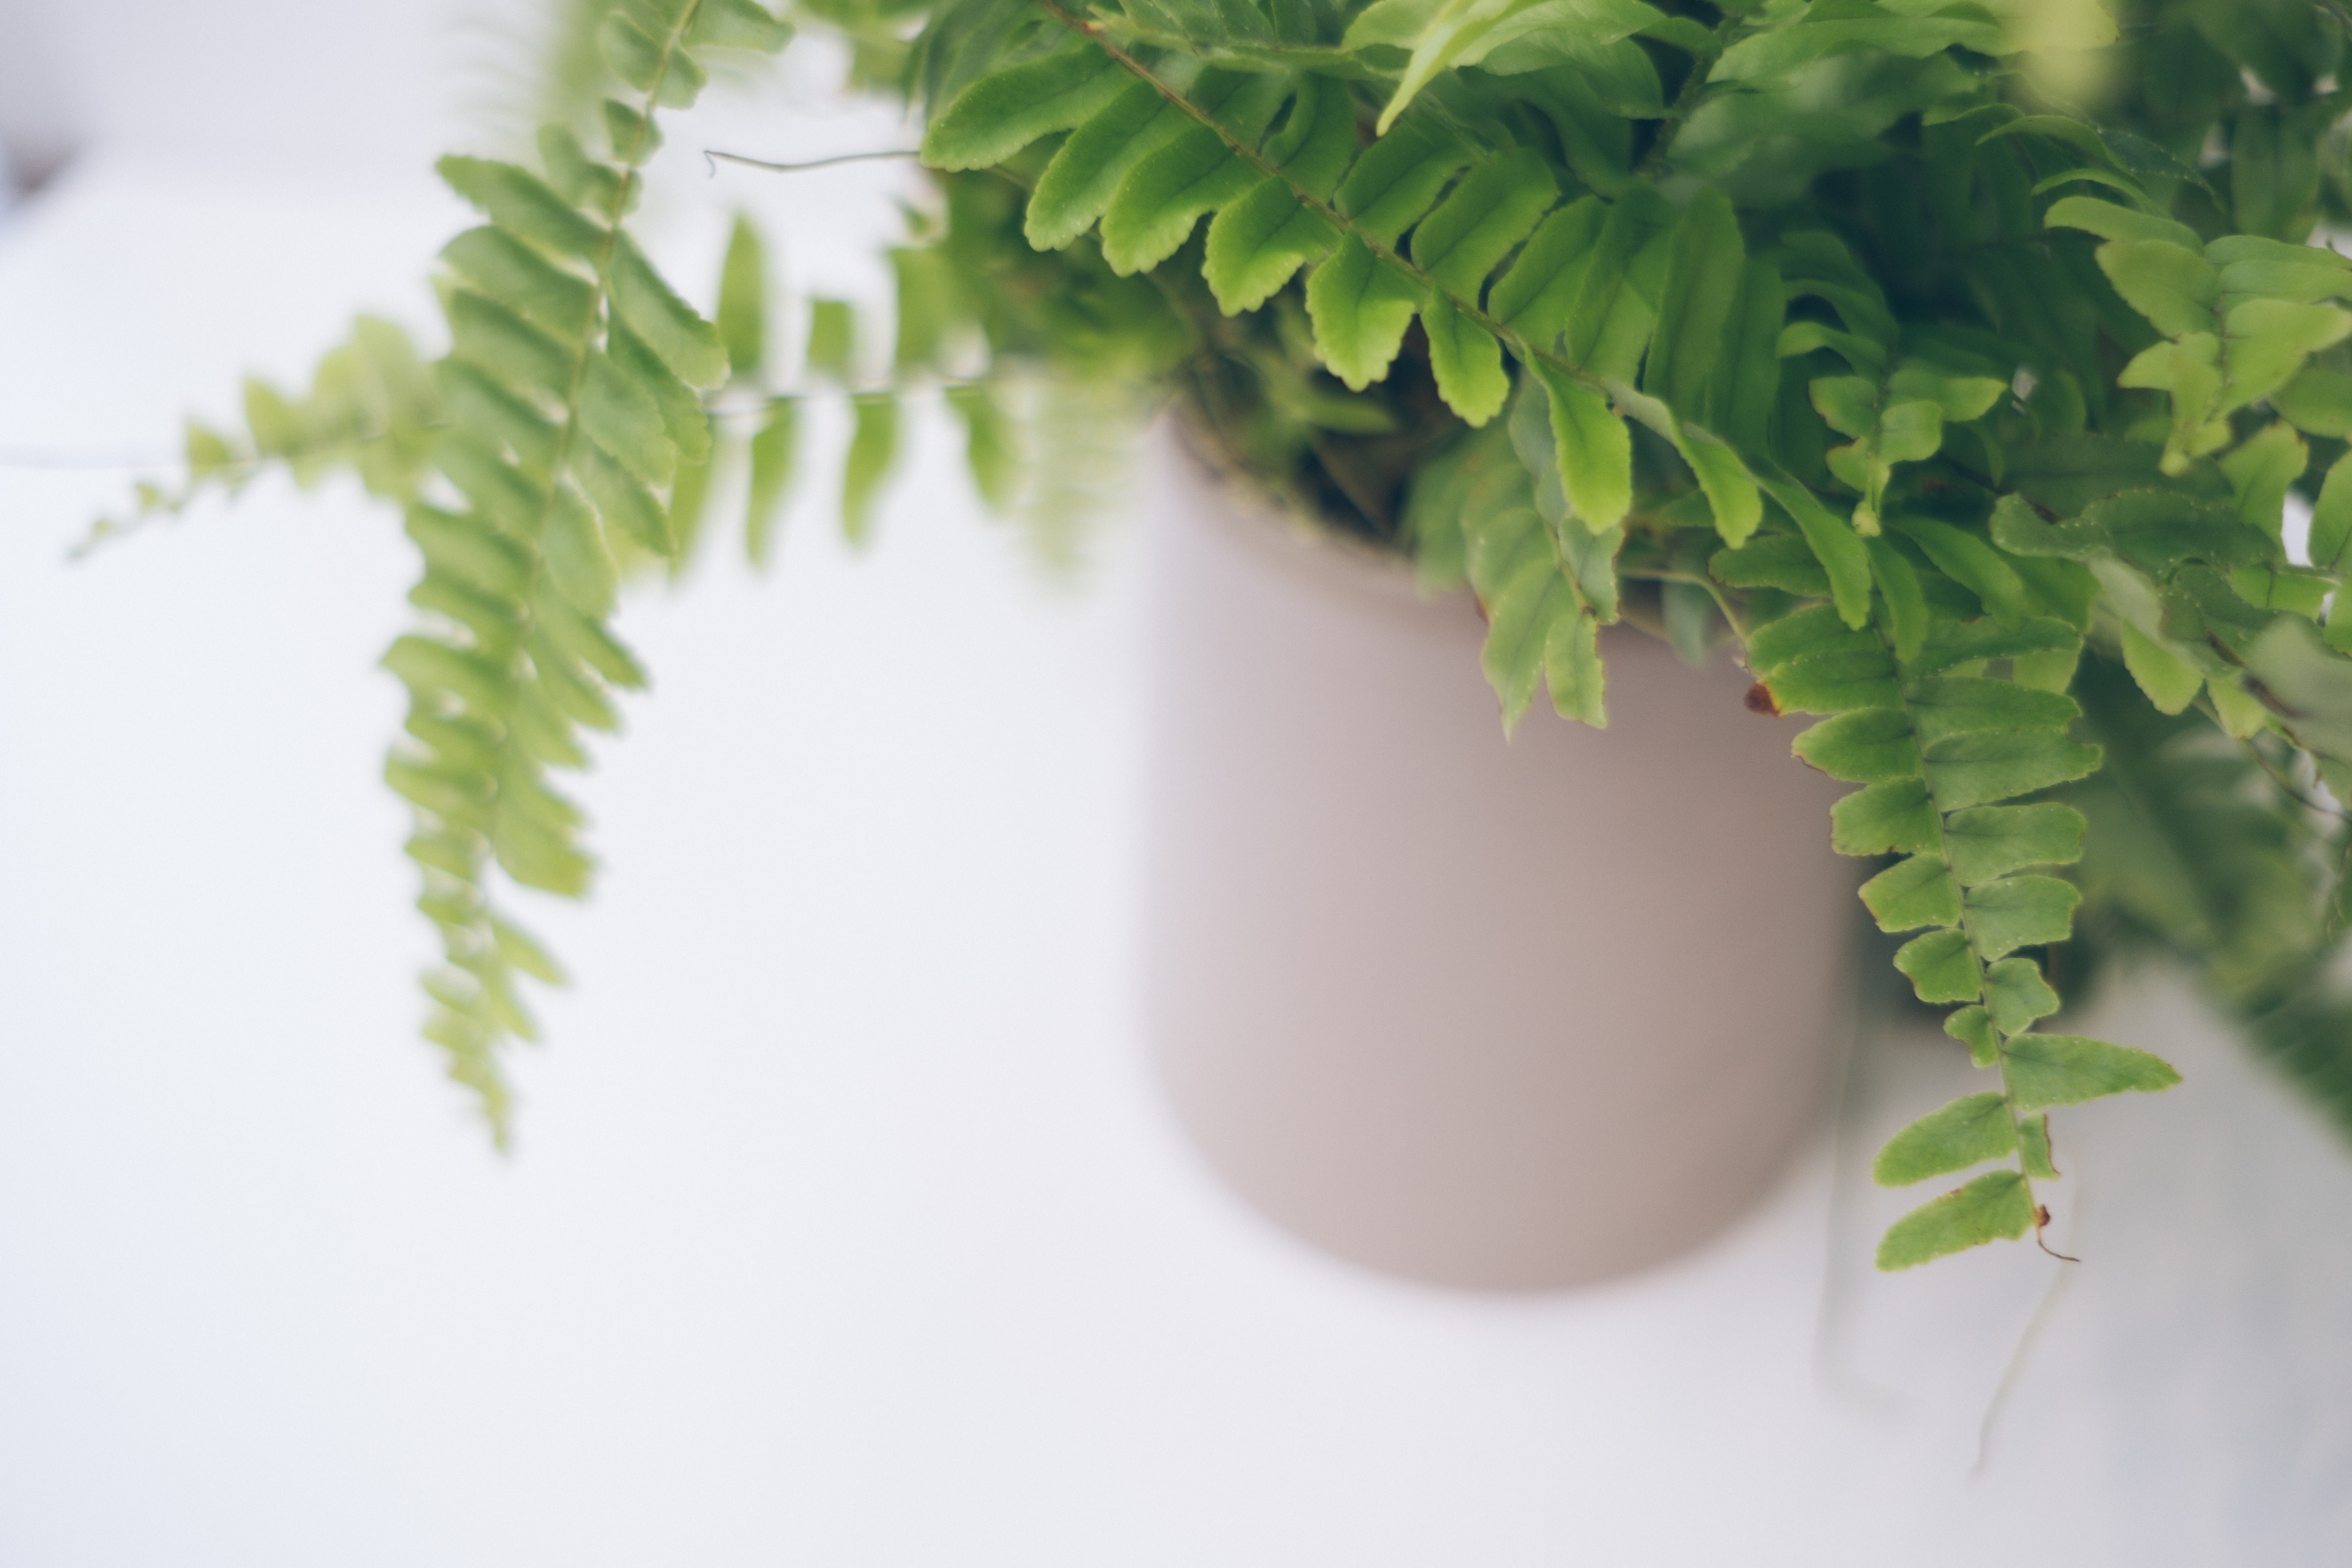 Close up shot of the nebl vase with a fern plant inside.